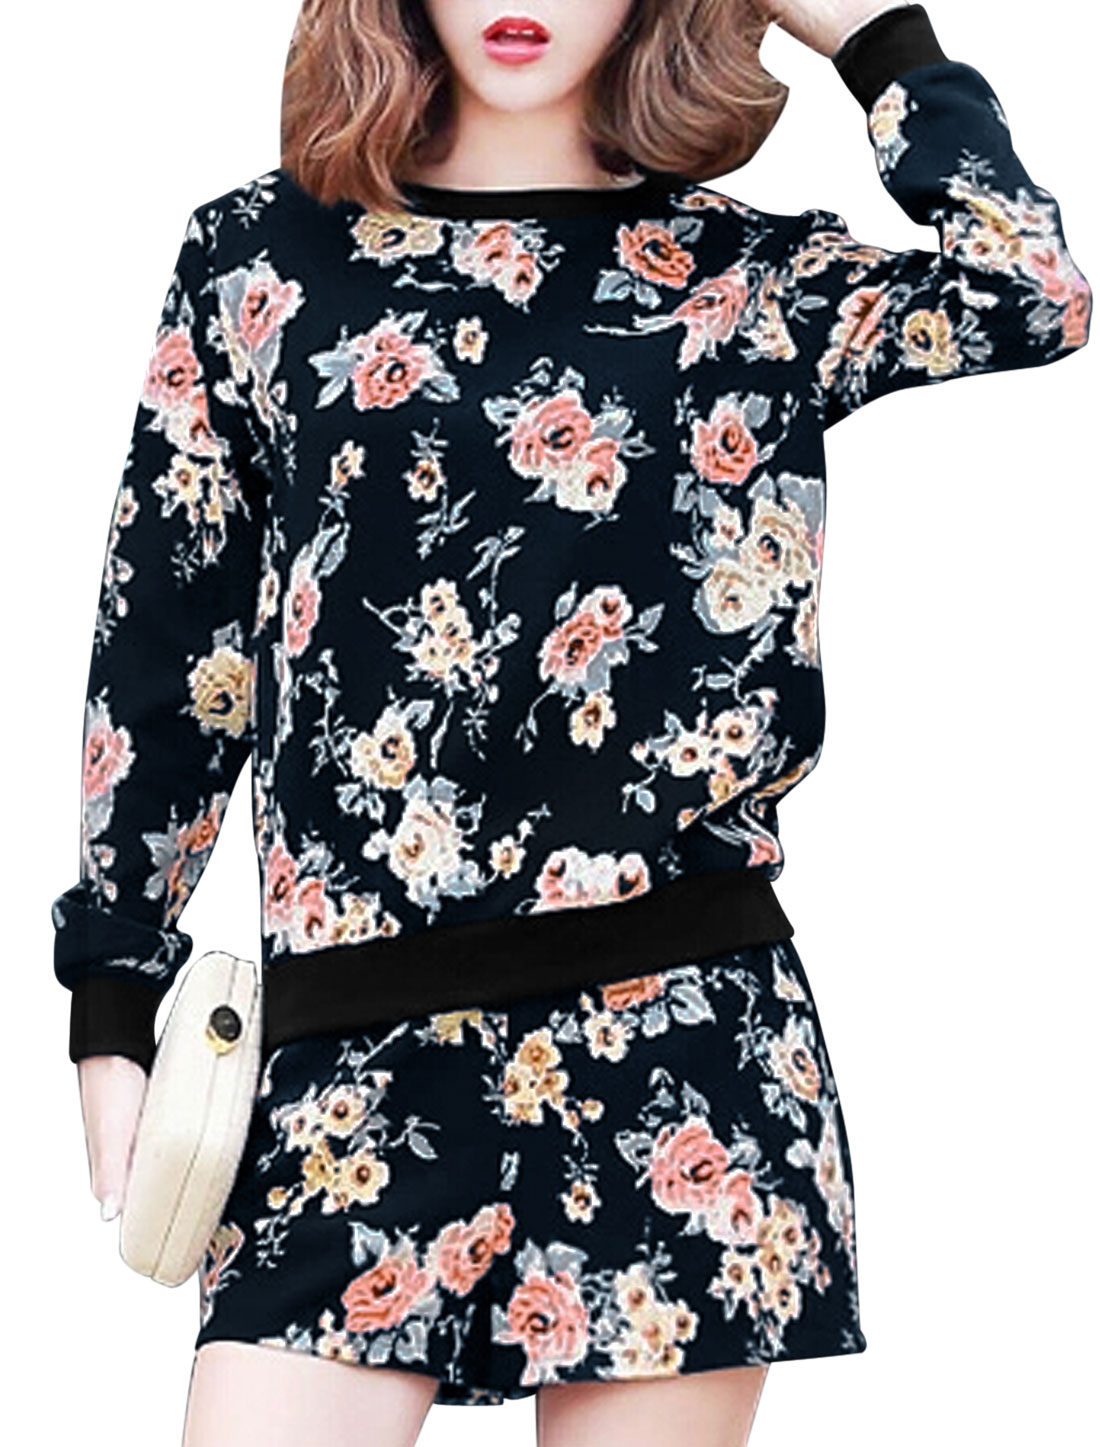 Ladies Navy Blue Pullover Floral Prints Top w Drawstring Front Pockets Shorts M